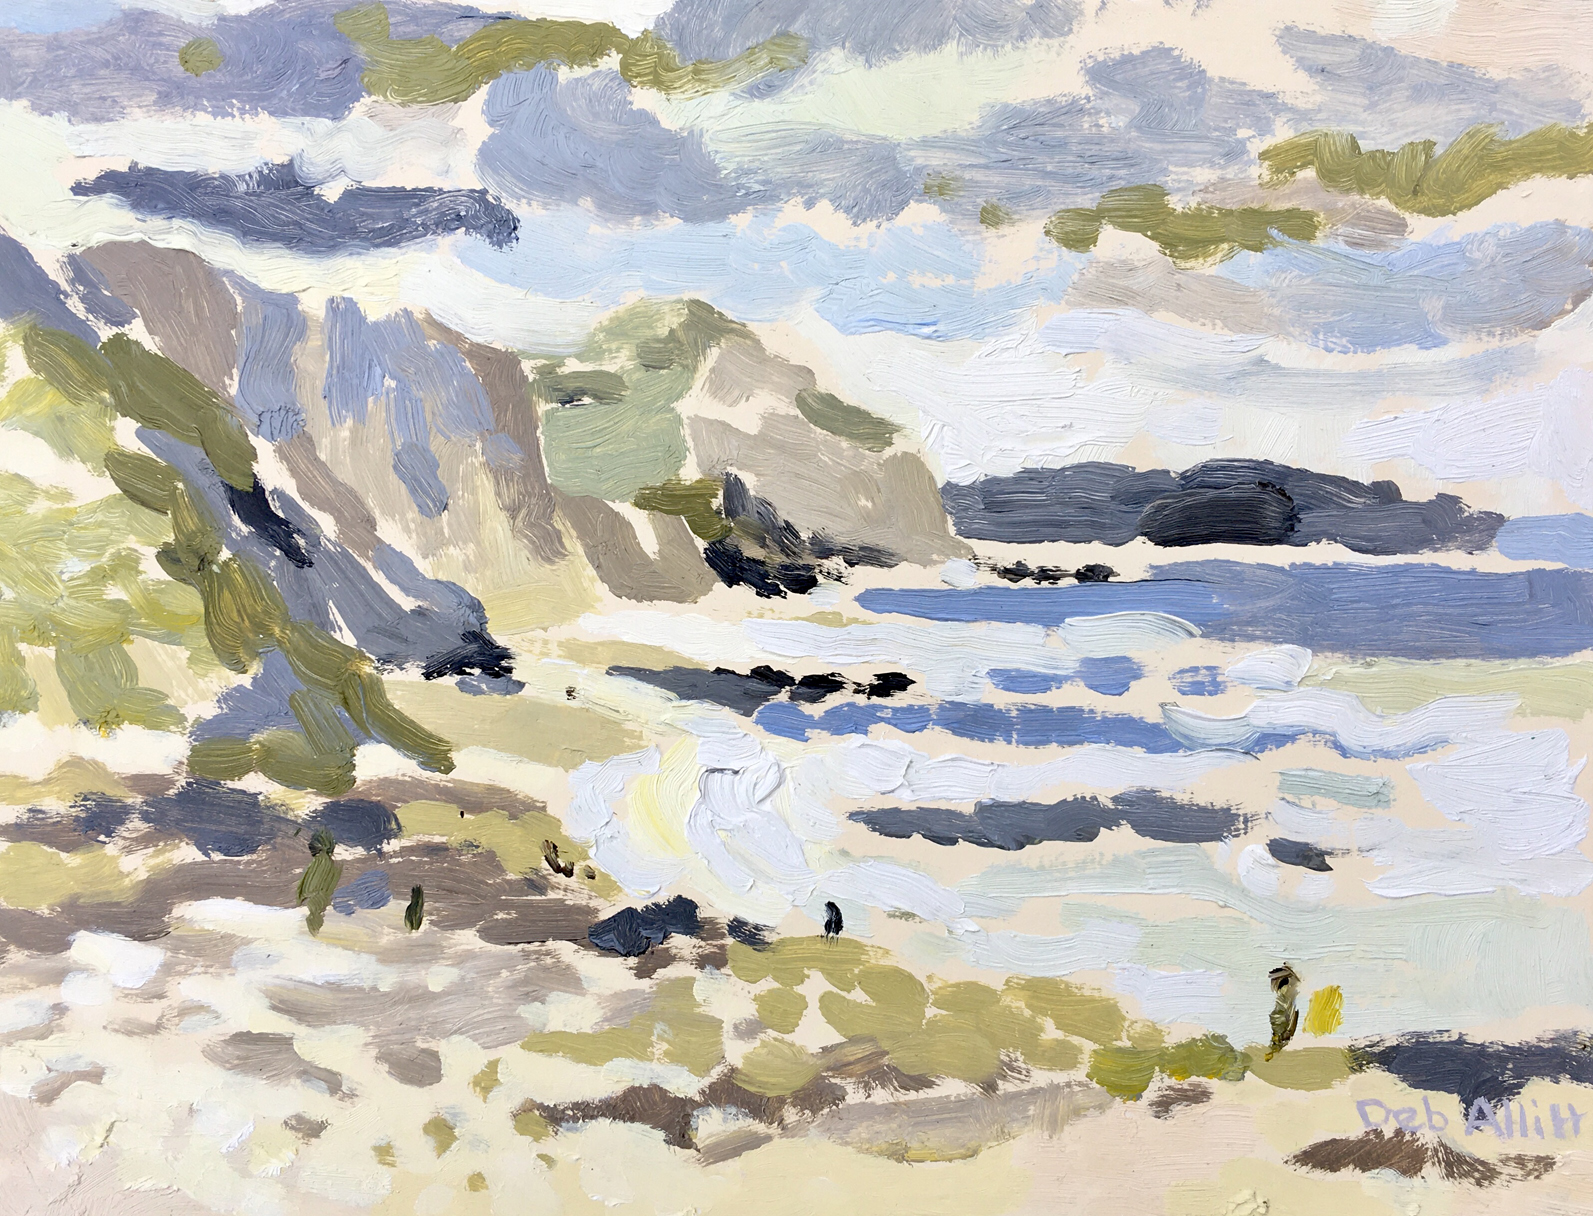 Charmouth Beach, July Day. Oil on canvas. 20 x 26 cm.